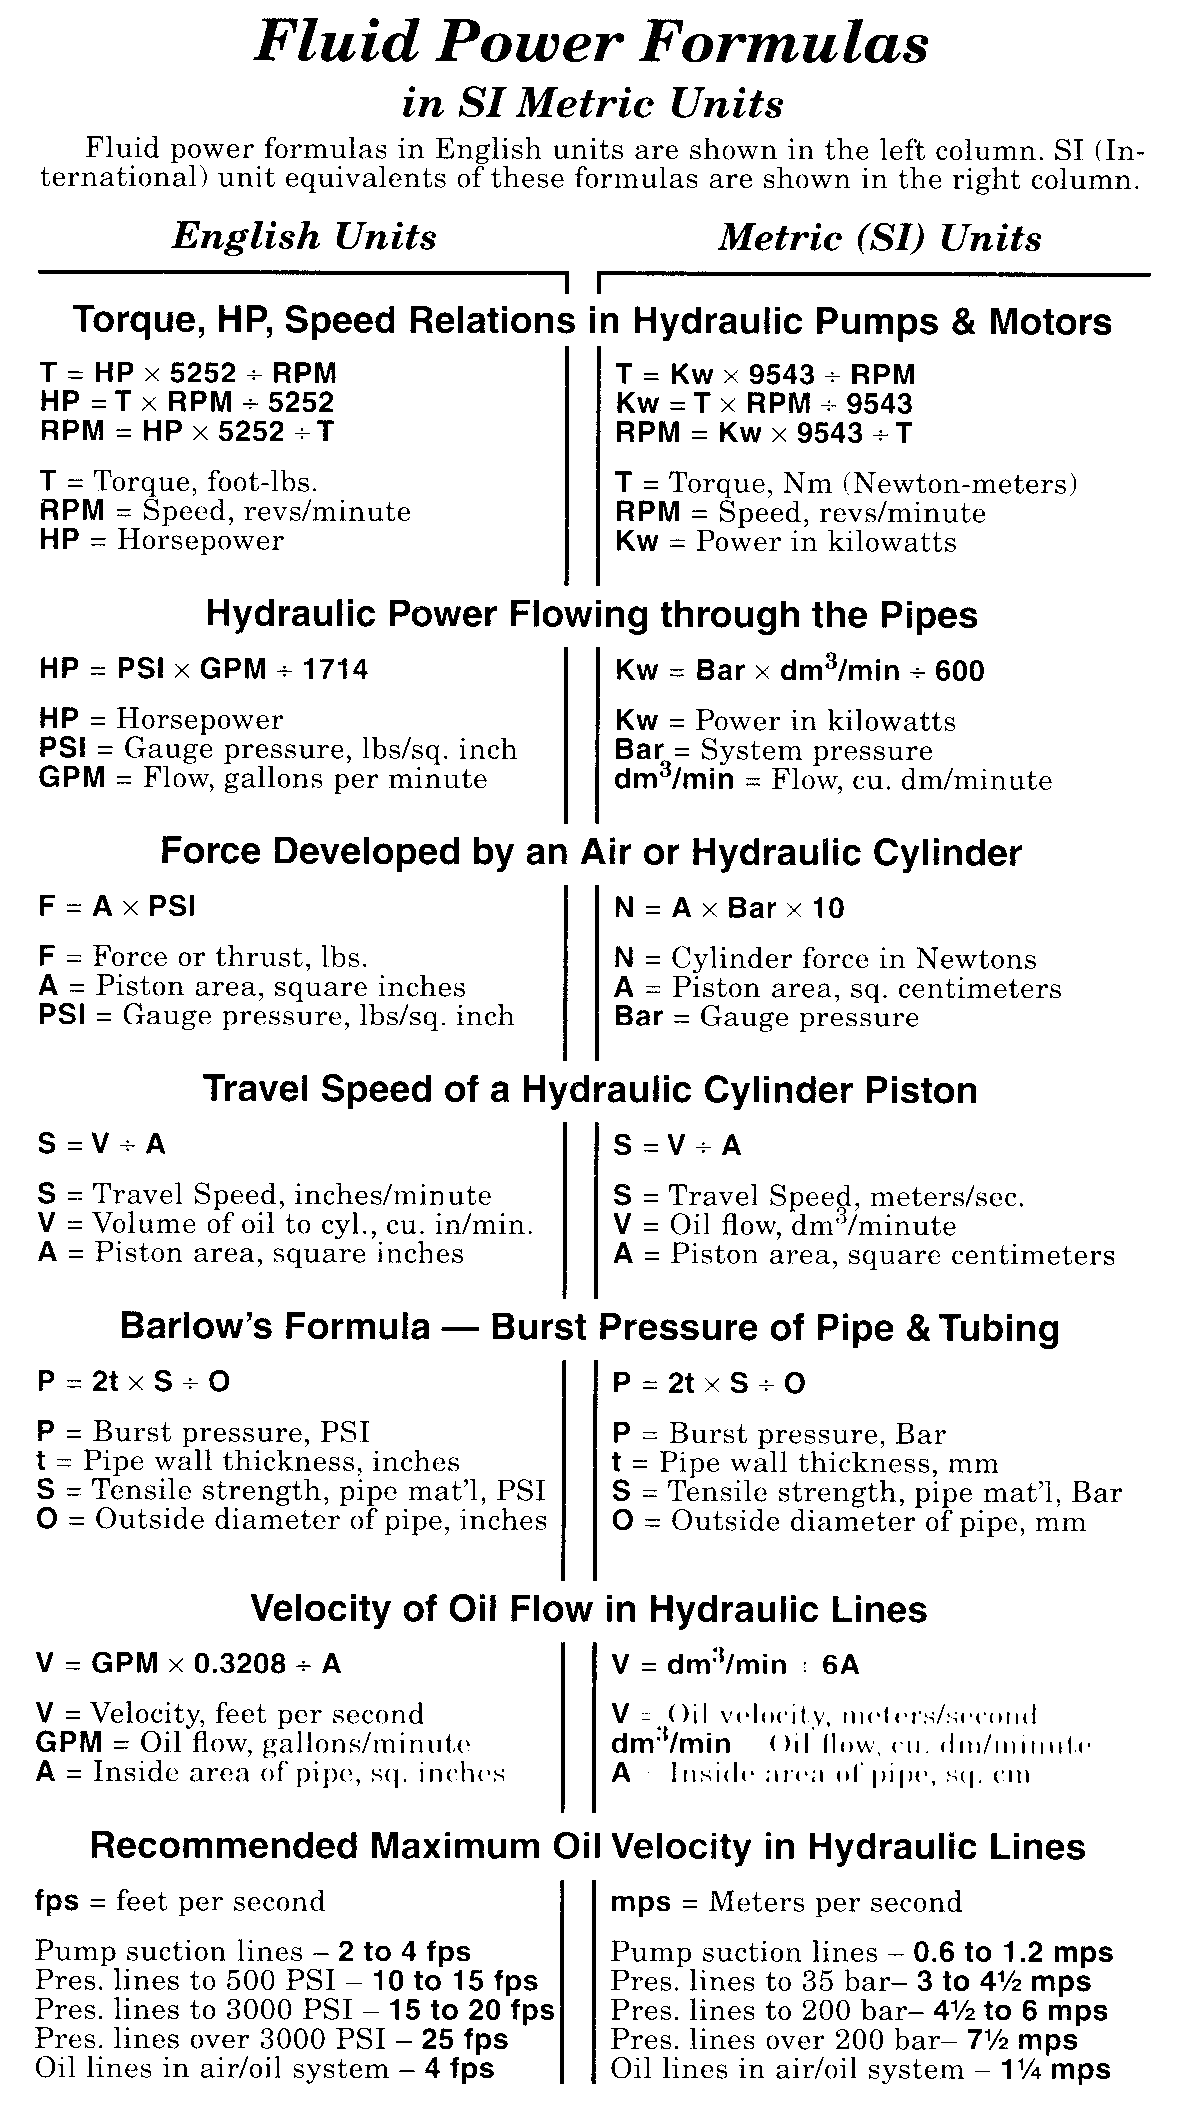 Hydraulic Cylinder Equations